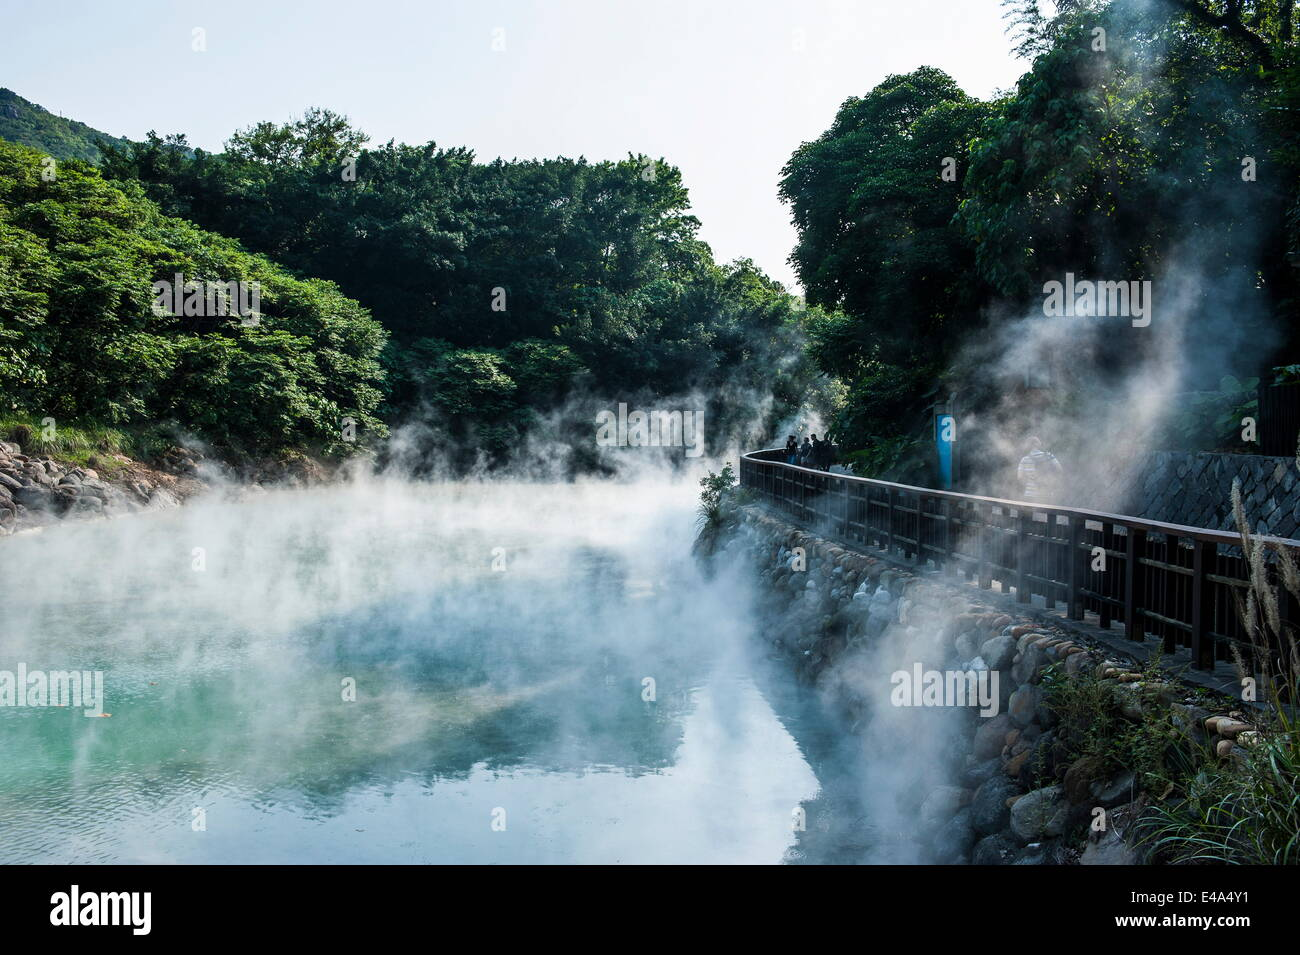 La vapeur d'eau dans le di-re vallée, Beitou Hot Spring Resort, Taipeh, Taiwan, l'Asie Photo Stock